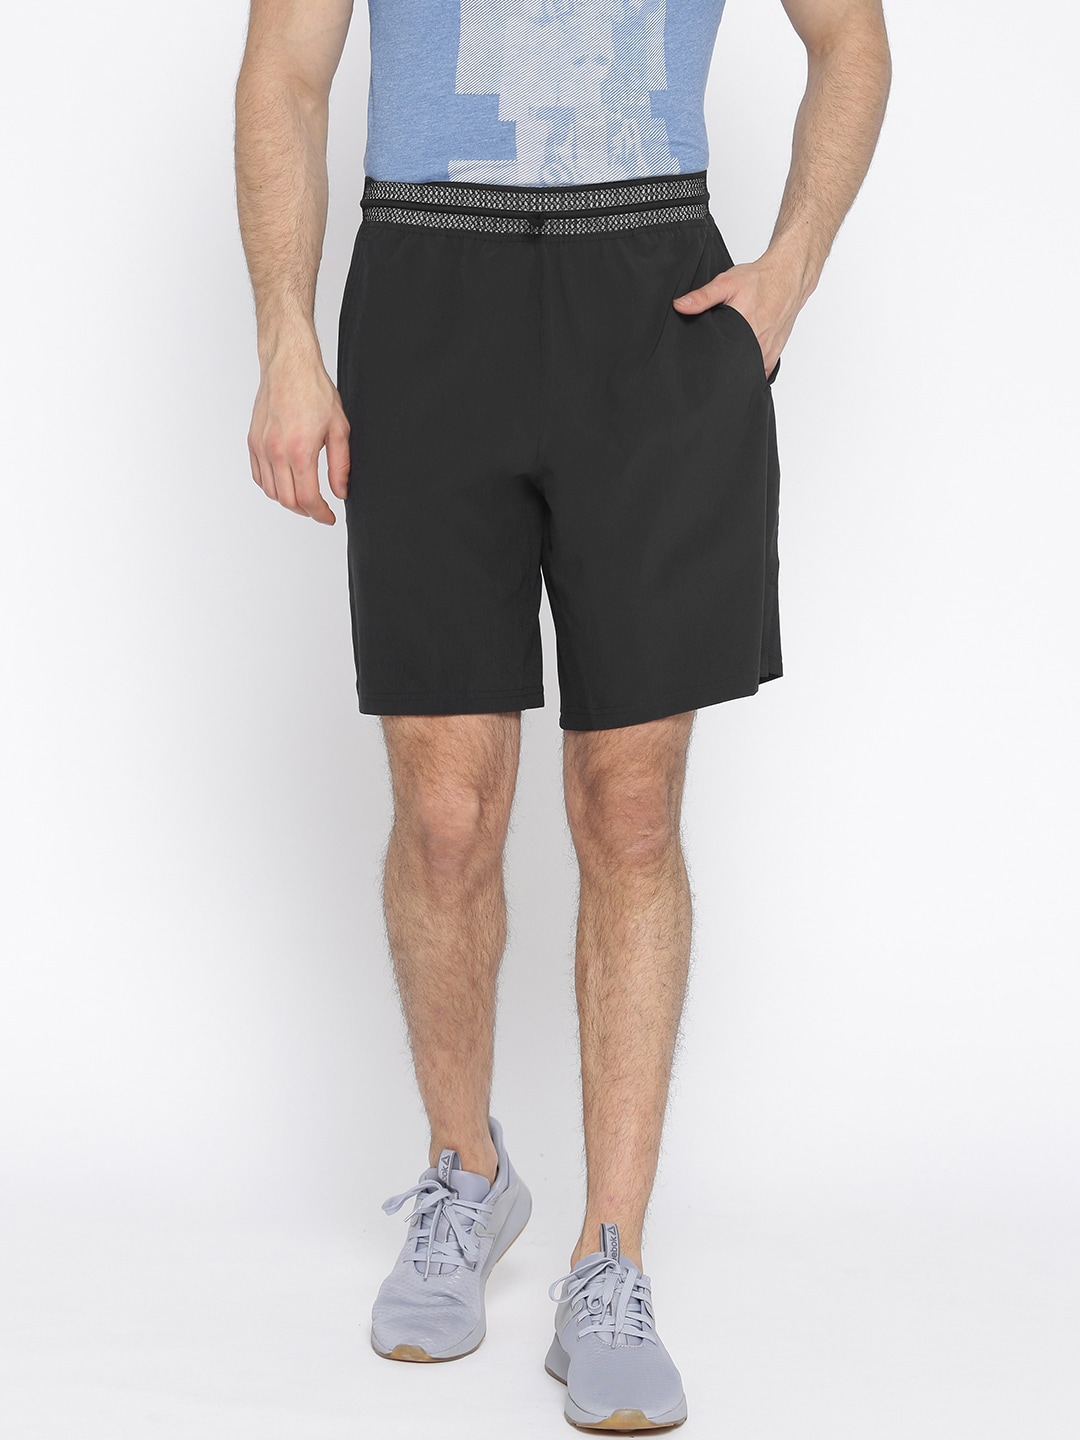 Reebok Woven Shorts - Buy Reebok Woven Shorts online in India 6cebc5c8d